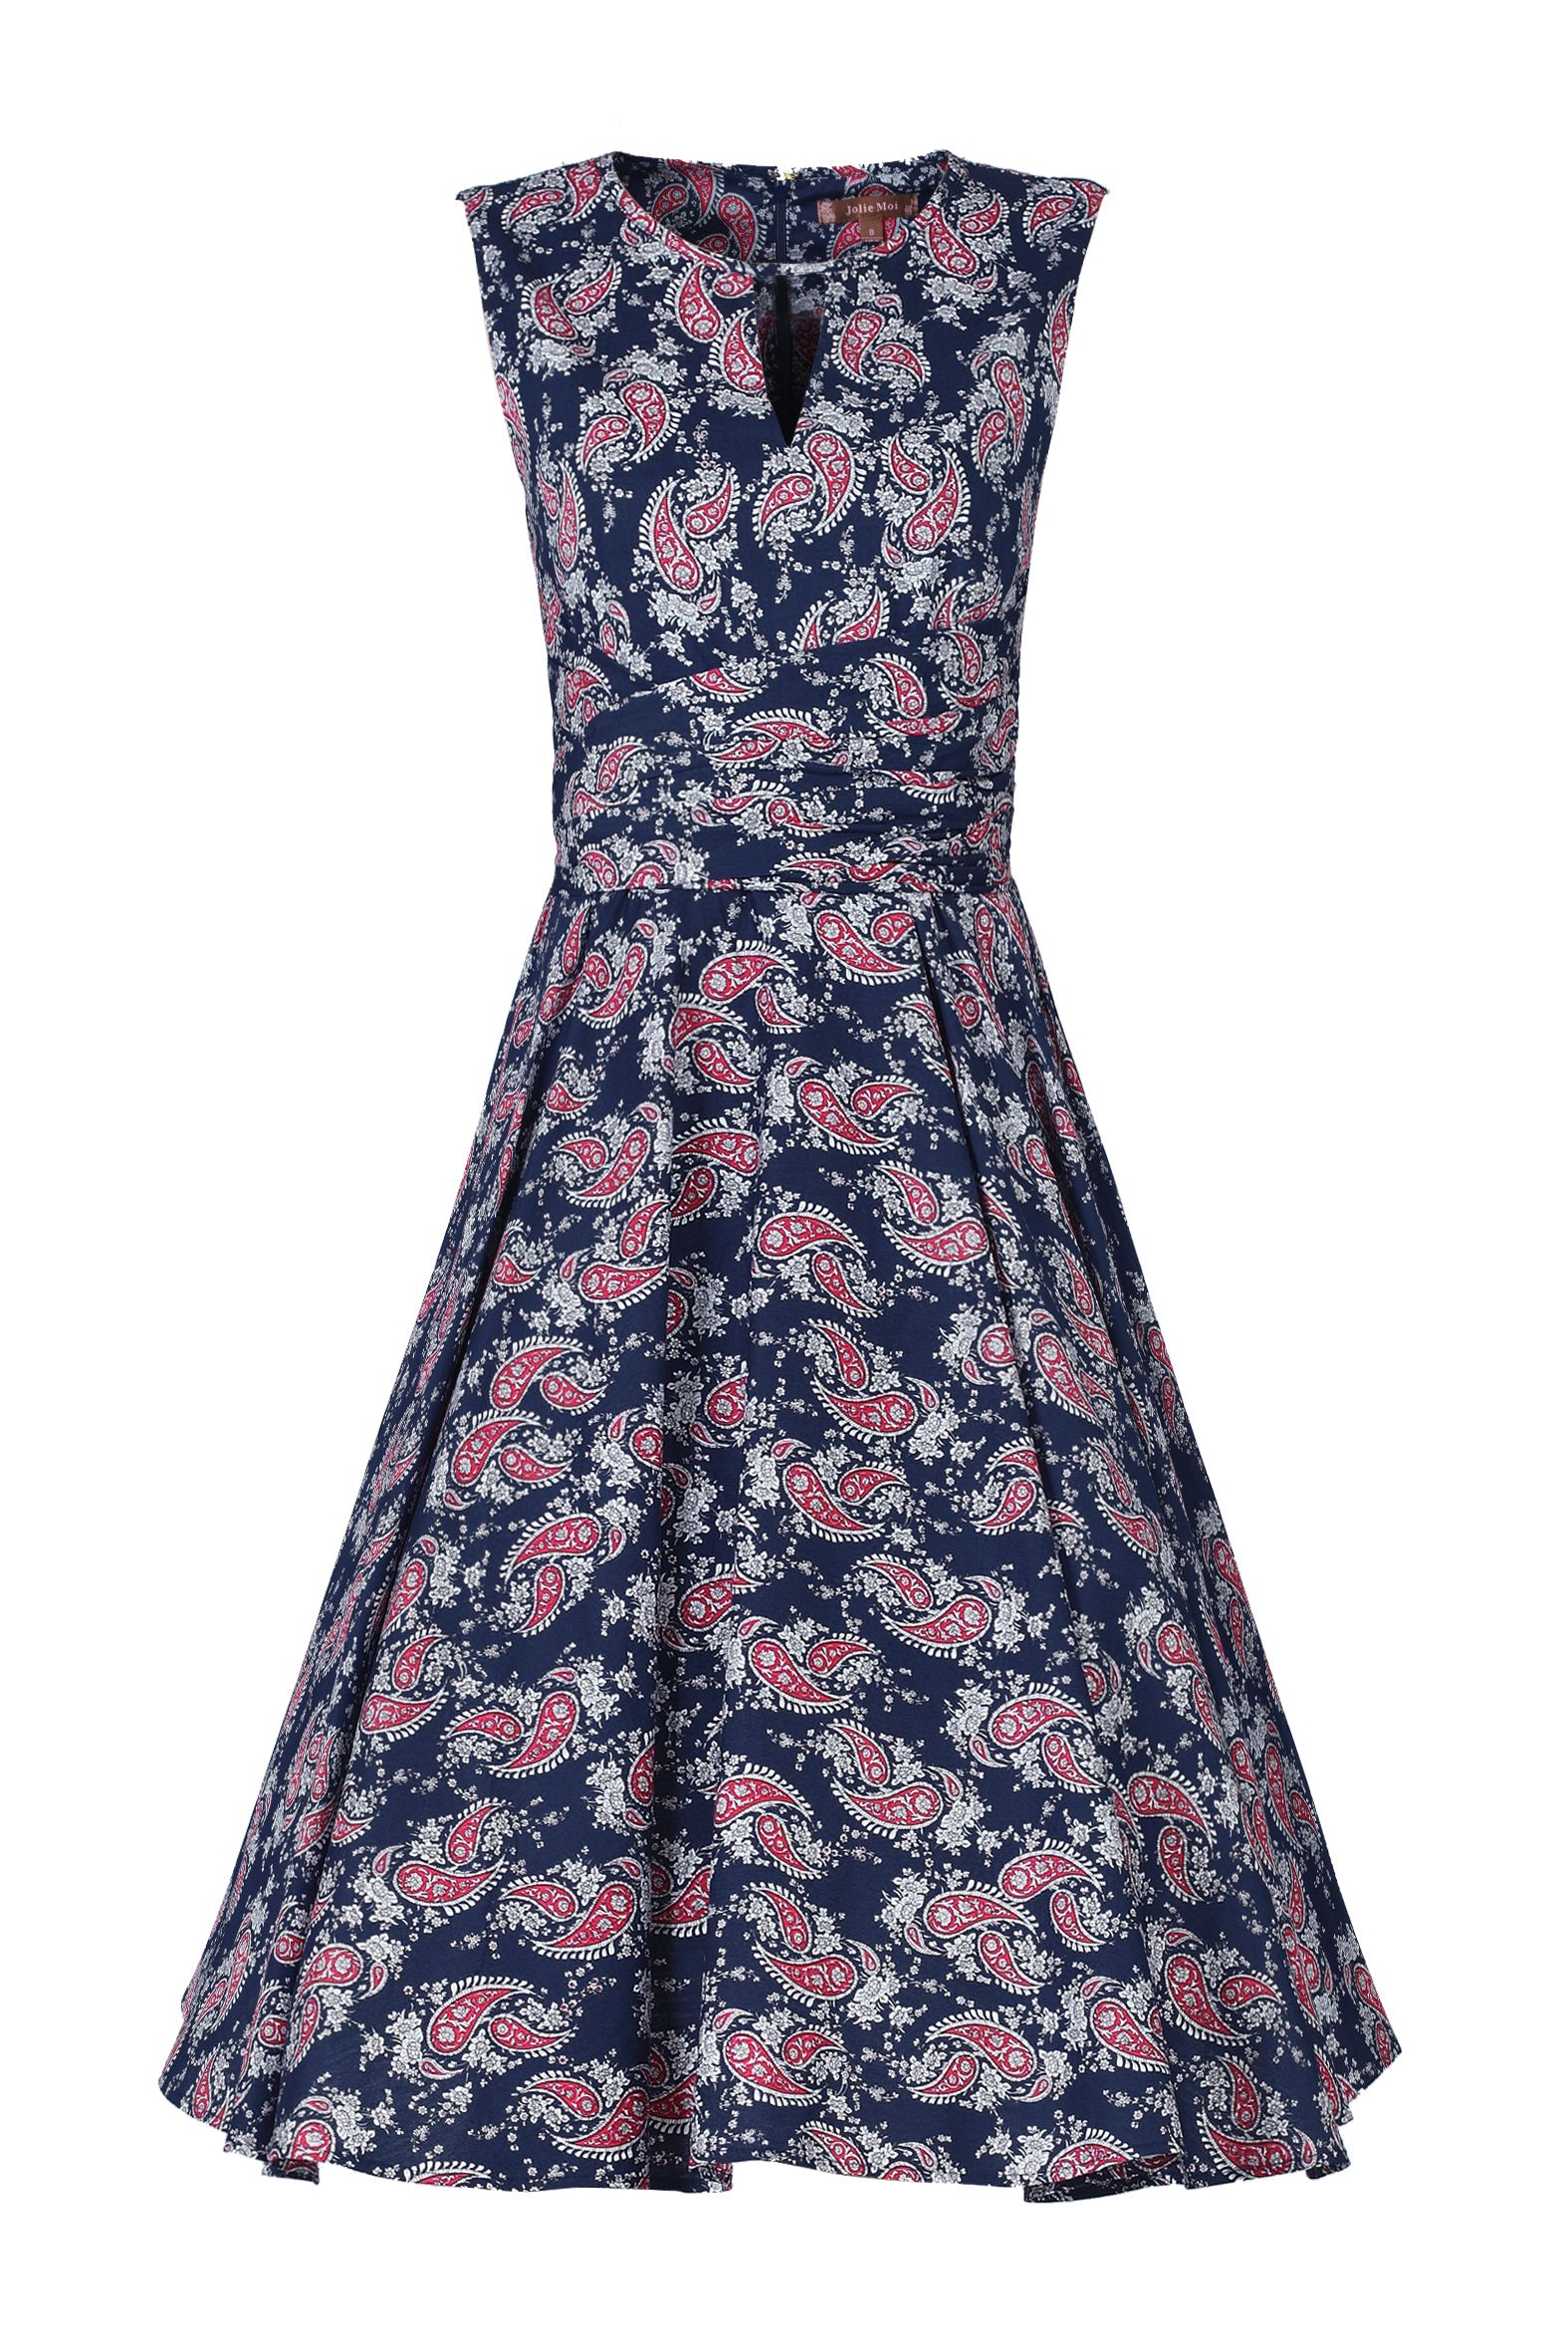 Jolie Moi Floral Print Wrap Belt Dress, Blue